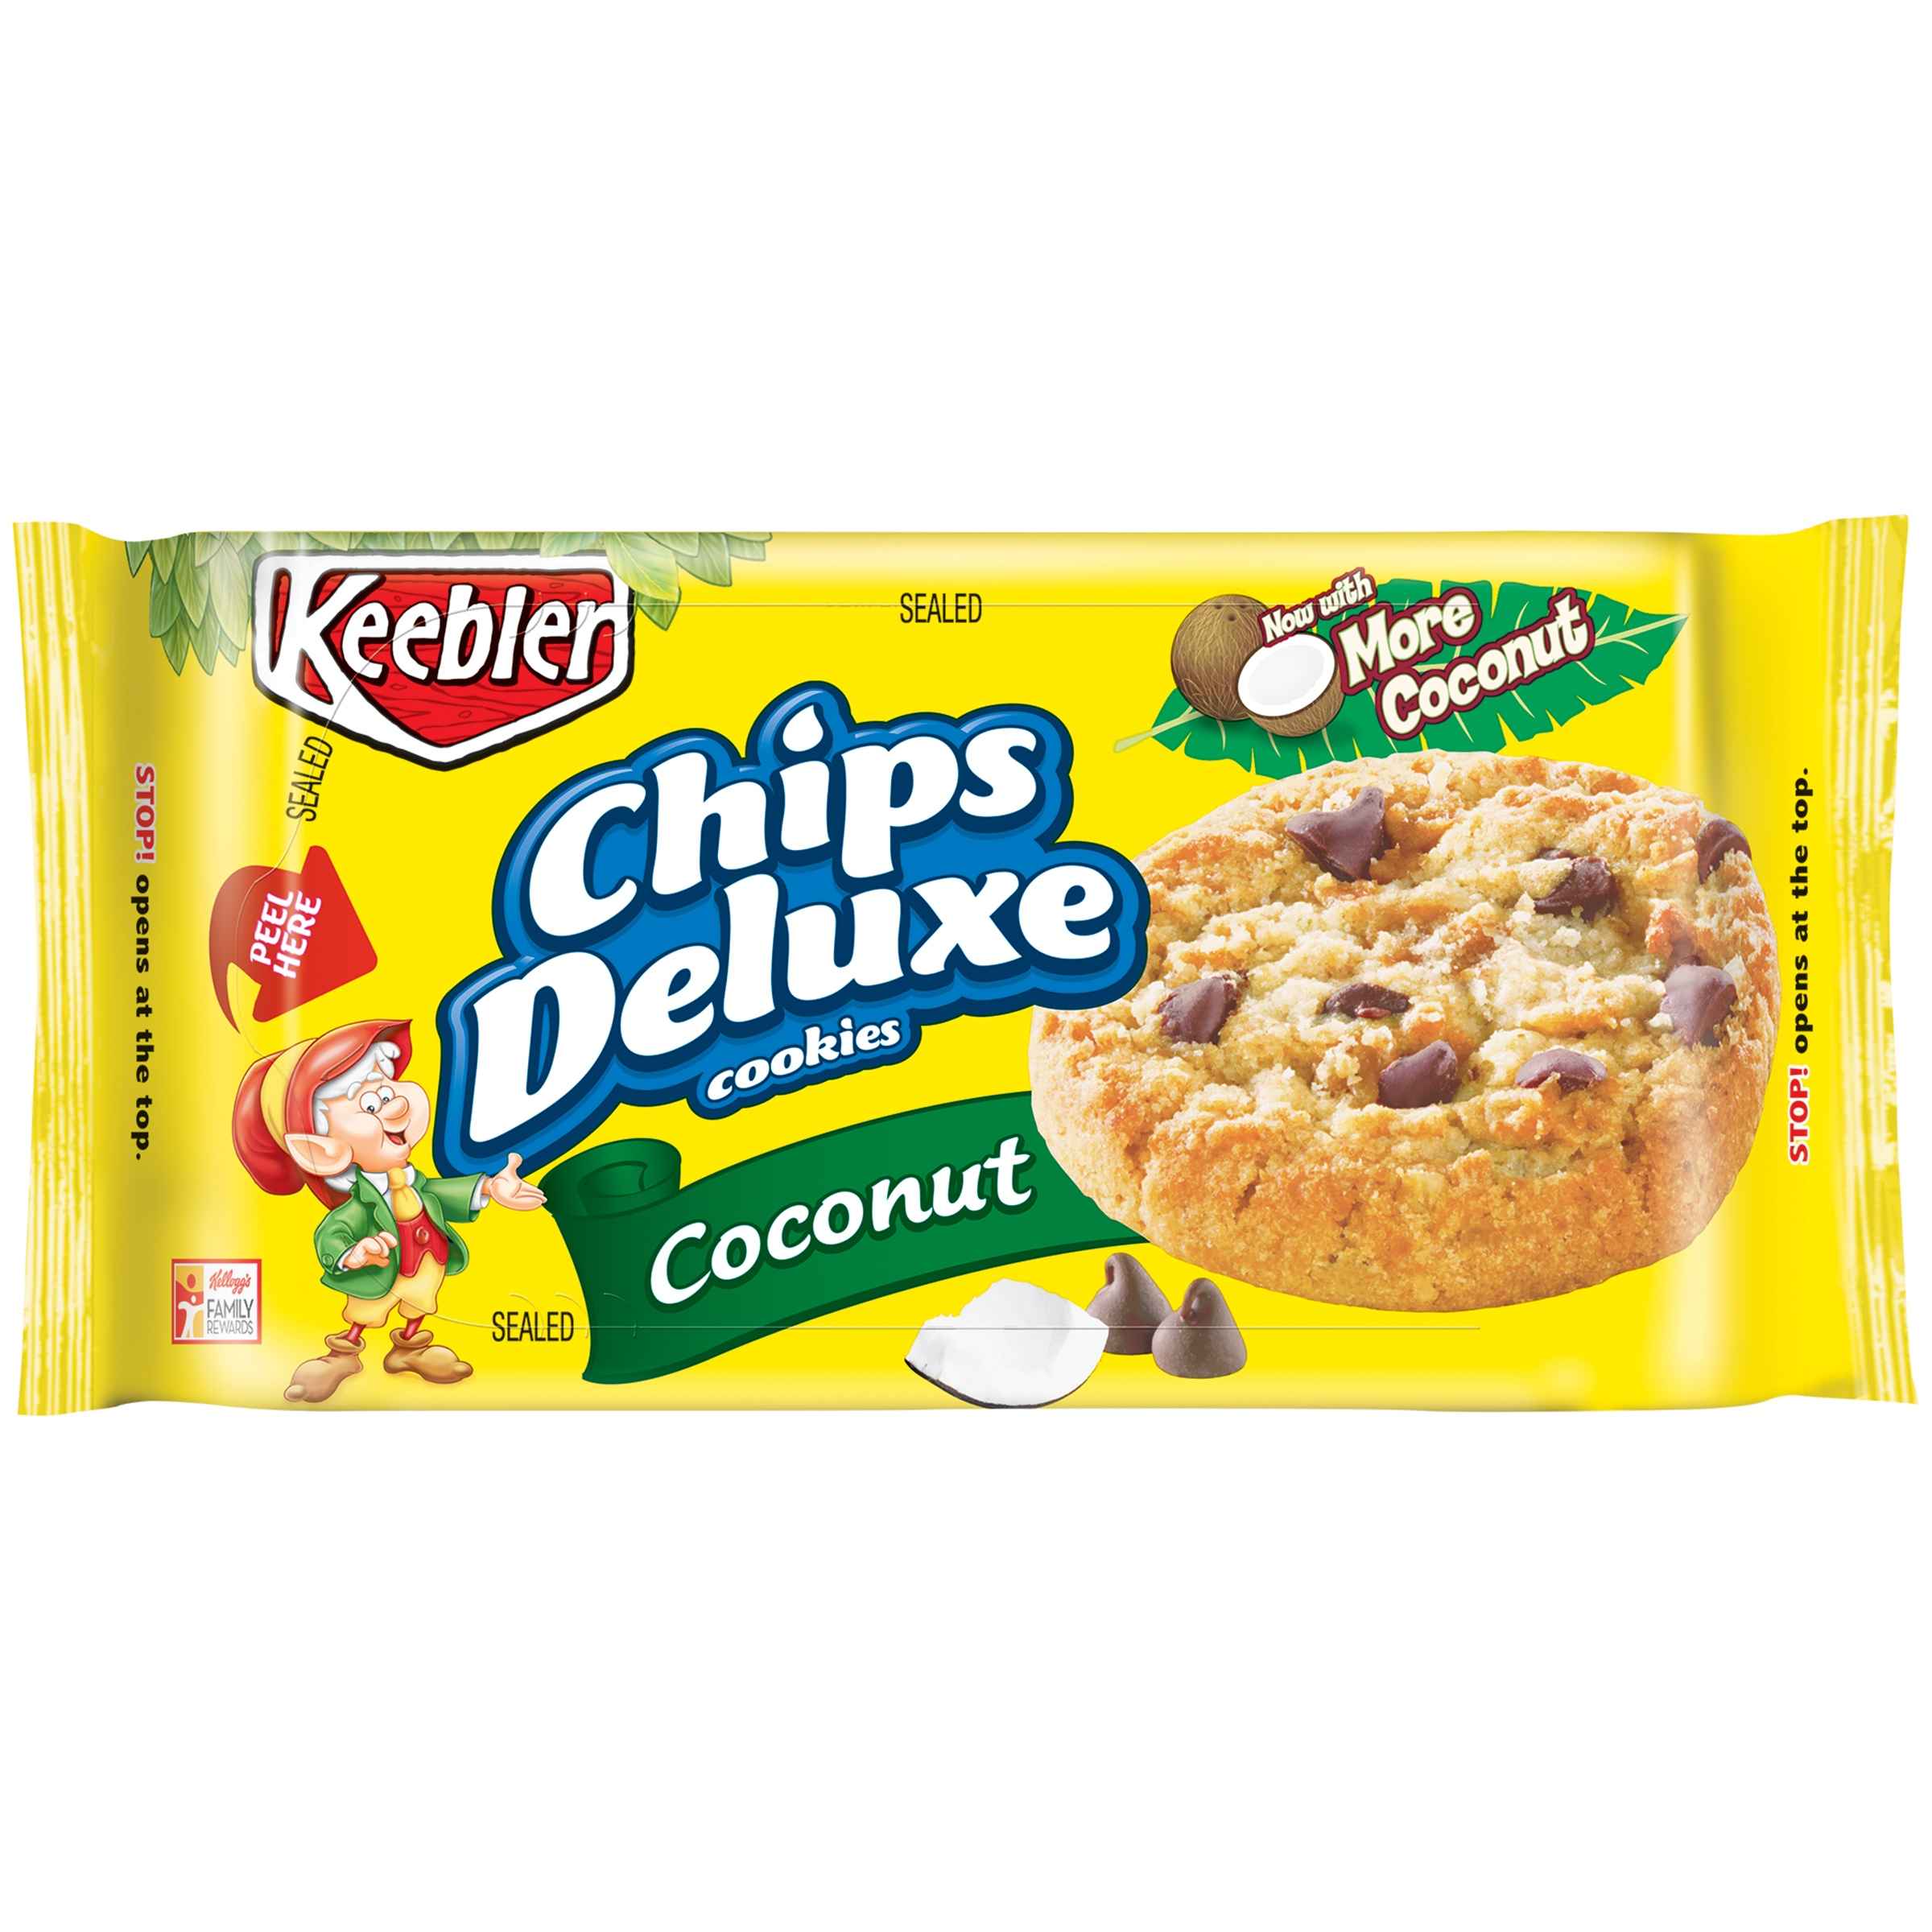 Keebler Chips Deluxe Coconut Cookies, 11 oz by Kellogg Sales Co.